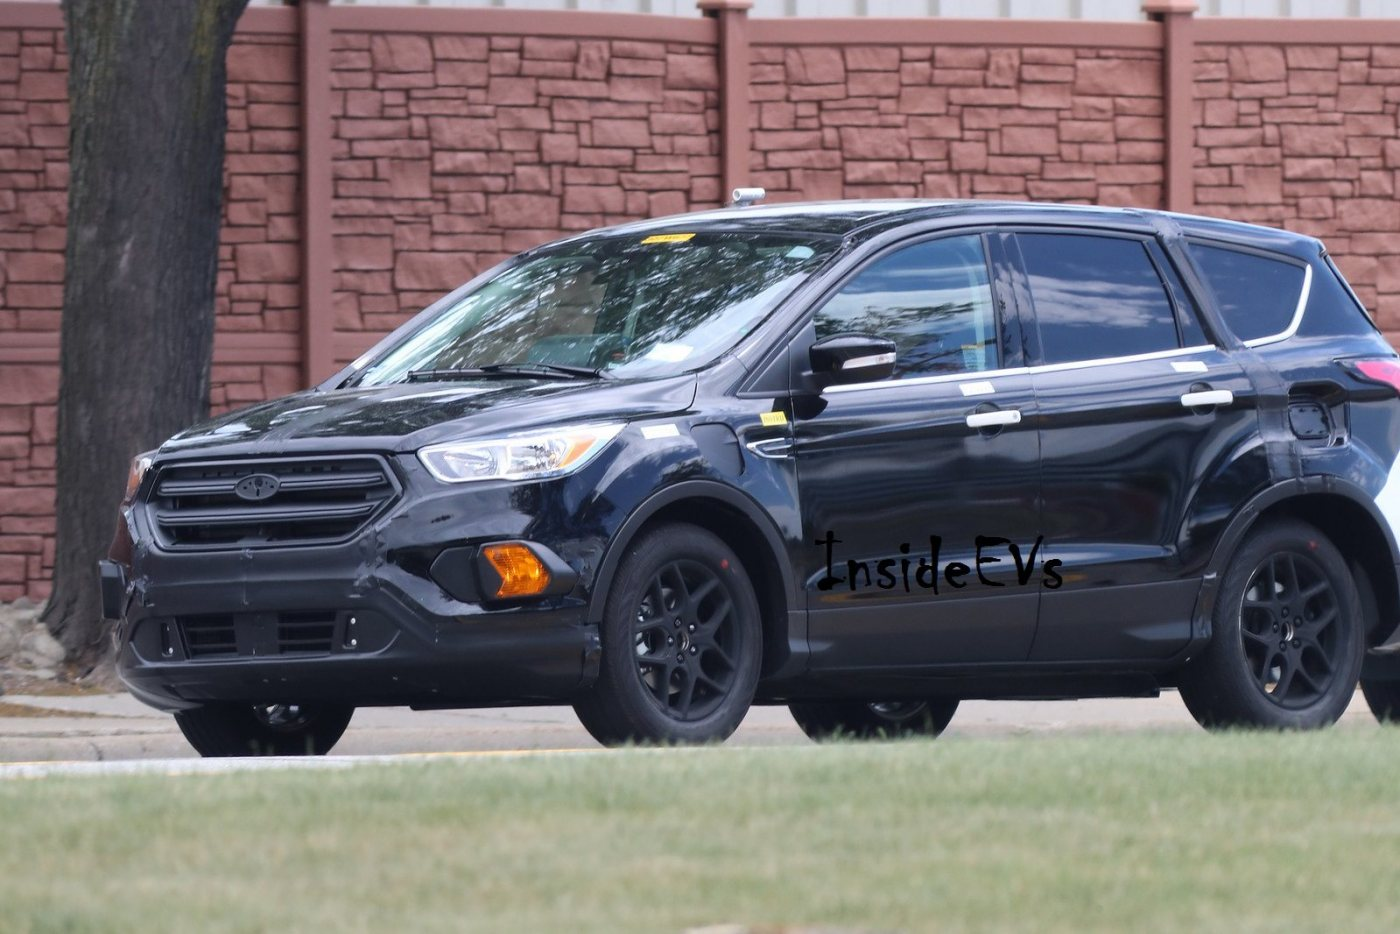 Ford-Escape-Energi-plug-in-hybrid-spyshots-2-automedia.jpg